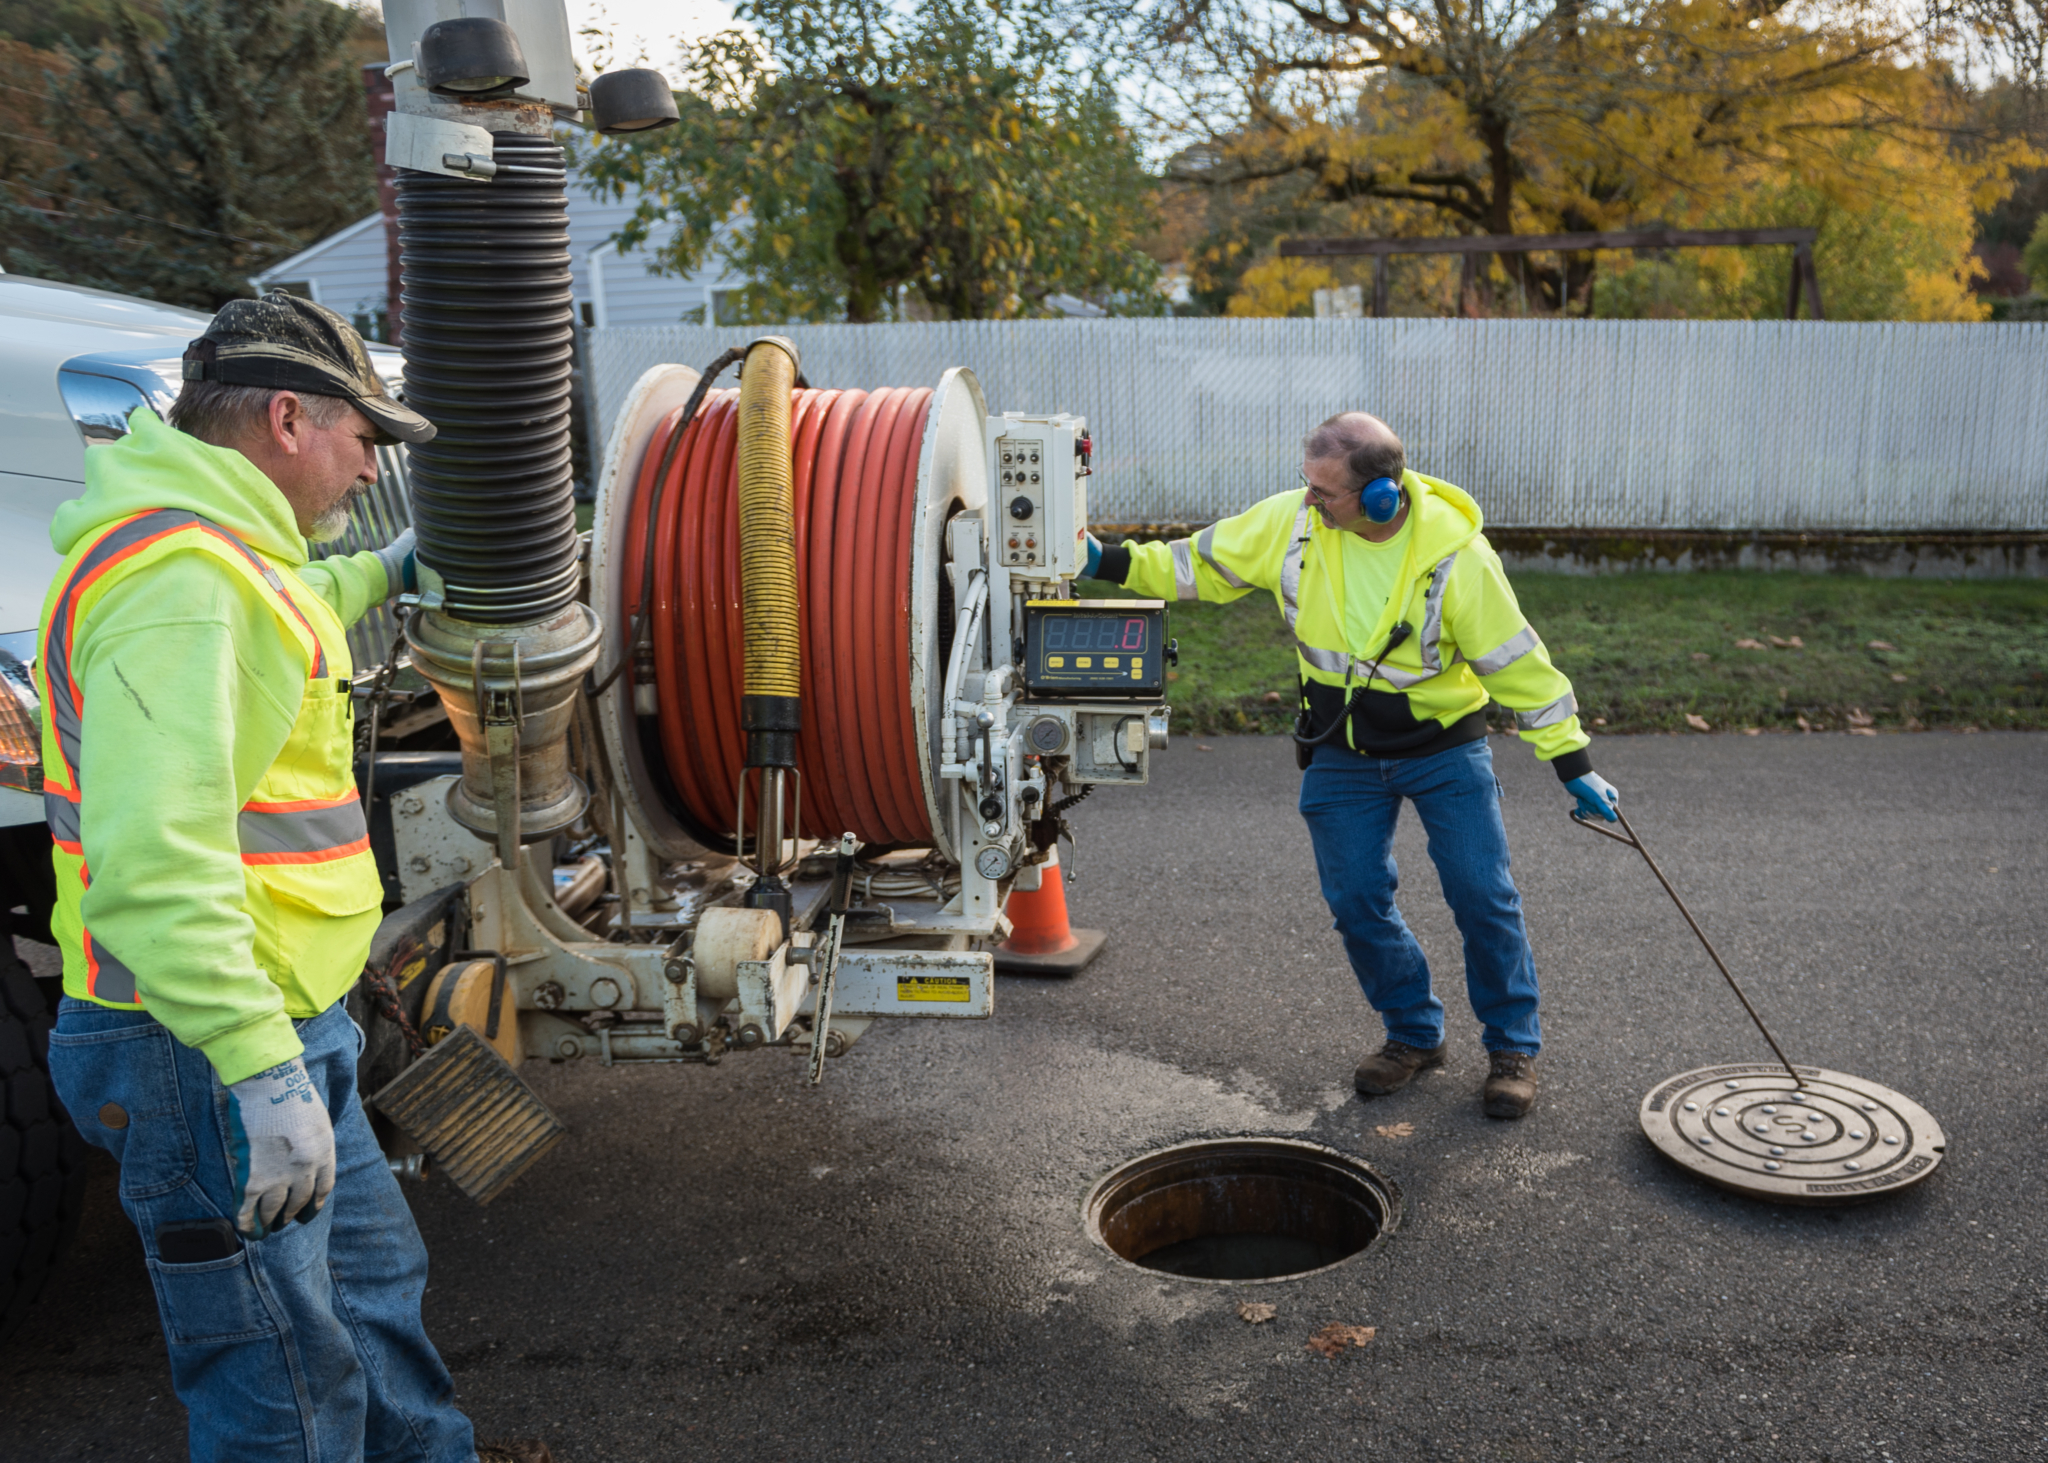 After being tasked with taking the Roseburg Urban Sanitary Authority's 160-mile system from a 10-year inspection cycle to a seven-year cycle, system operator Dean Ronk had his work cut out for him. But somehow, he has managed to get through it on a 6.4-year completion while running the program on his own. Above, Ronk is replacing a manhole after using a combination machine to clean a sewer line. (Photo By Ethan Rocke)